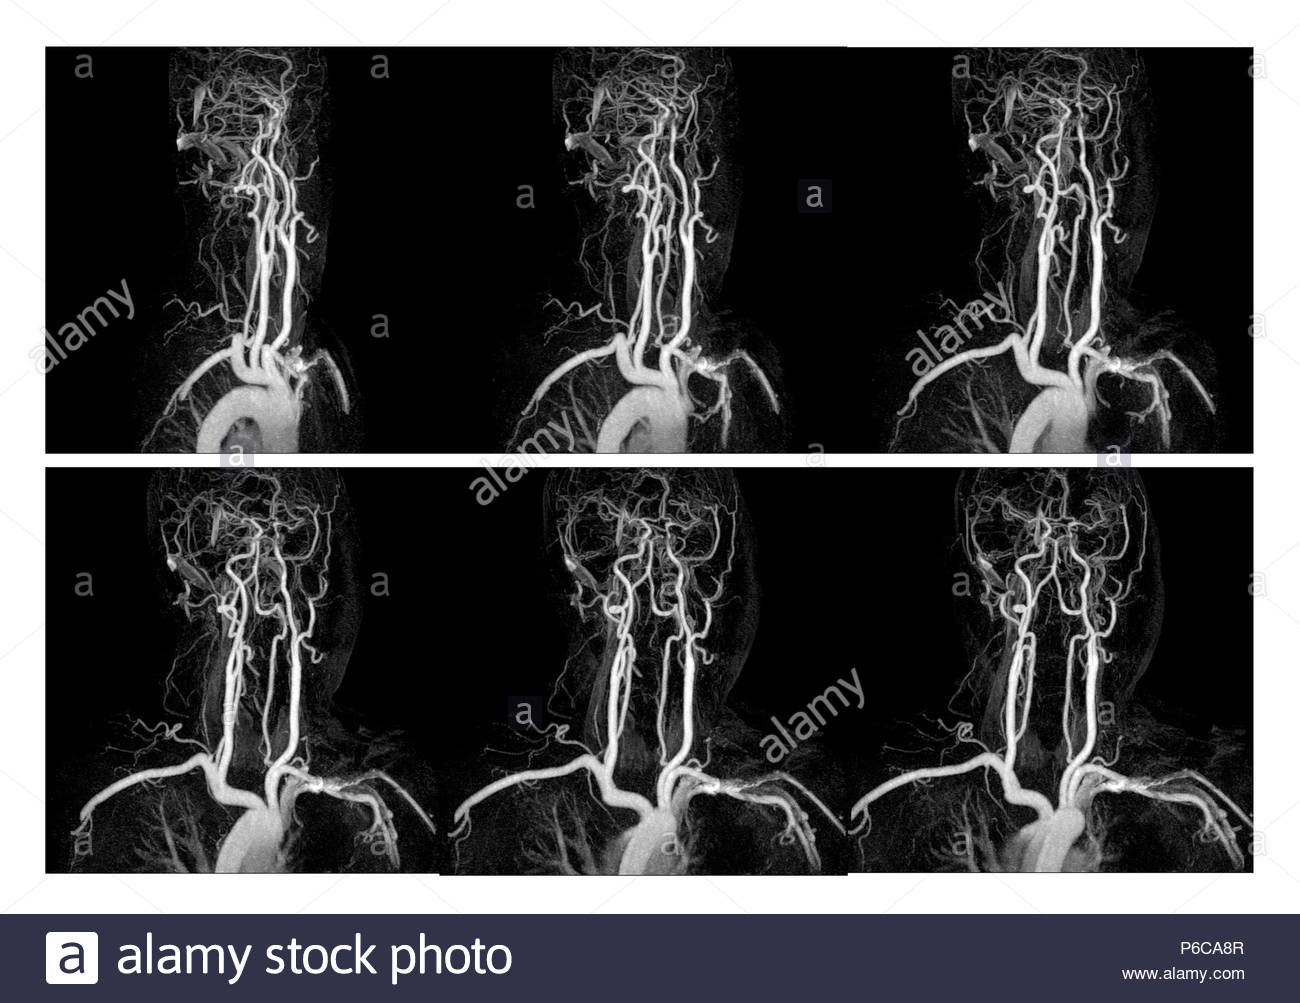 Brain Xray Black and White Stock Photos & Images - Alamy